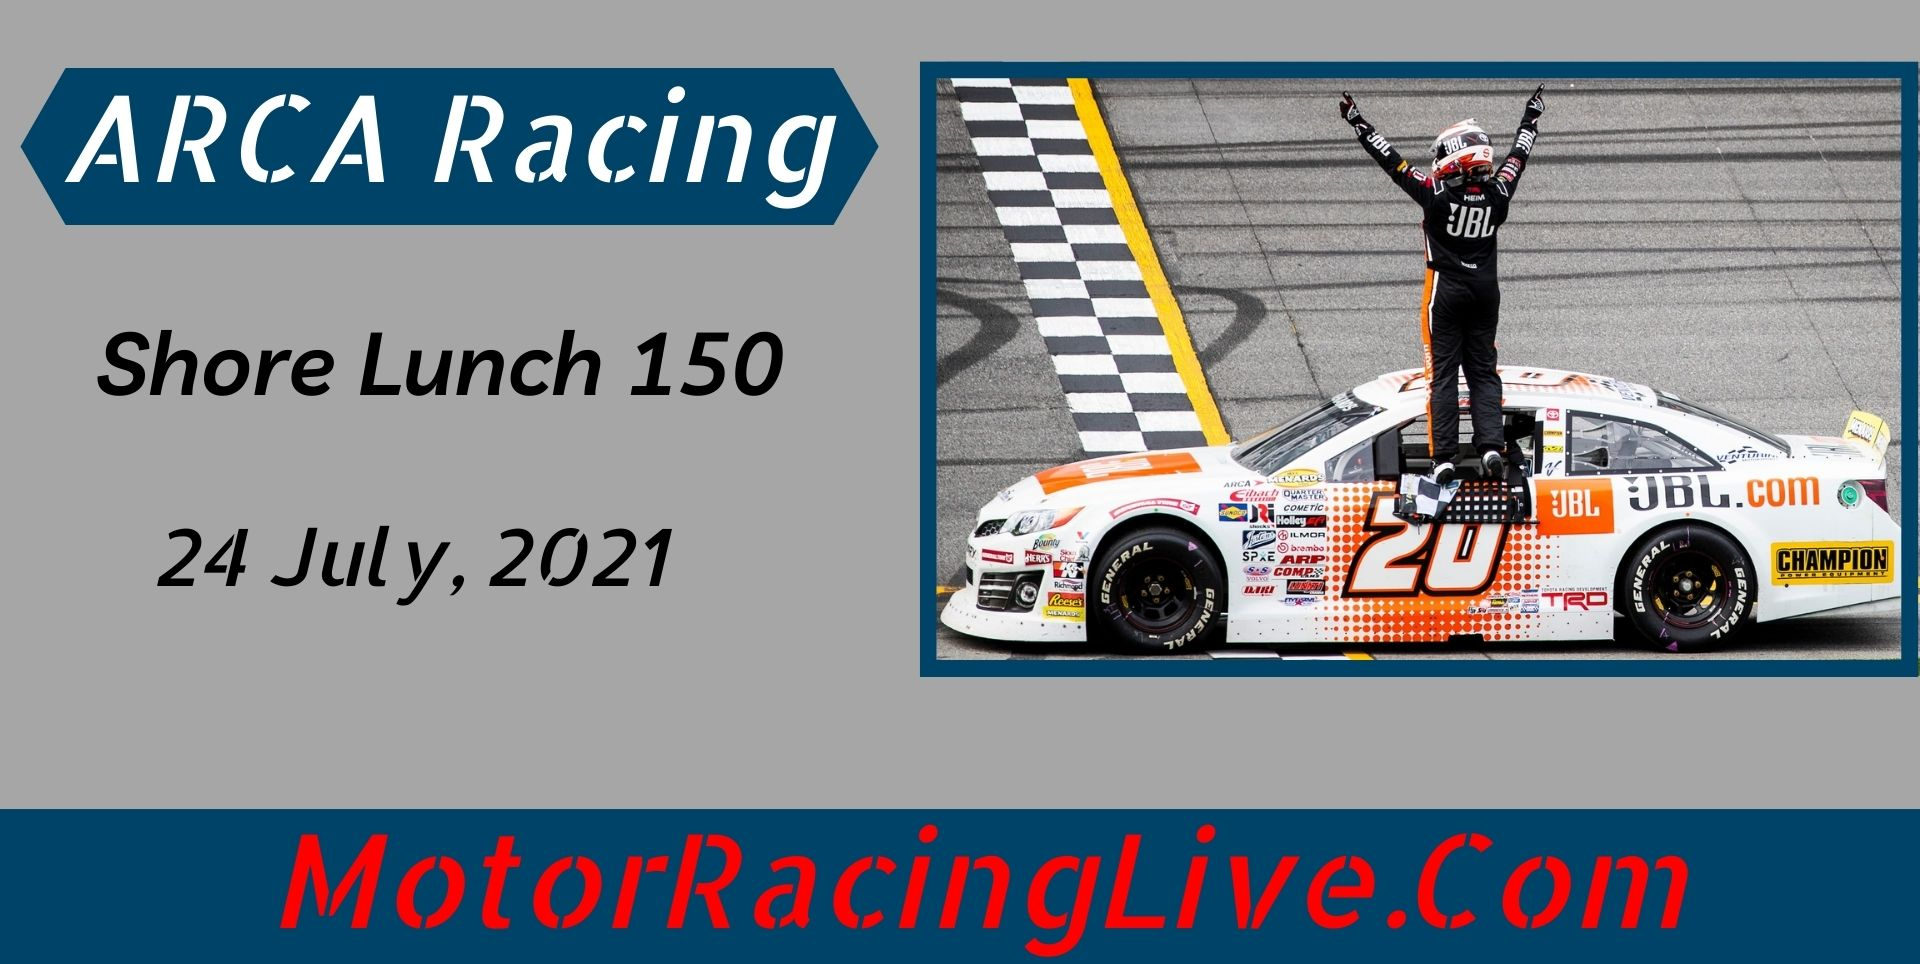 Shore Lunch 150 ARCA Racing Live Stream 2021